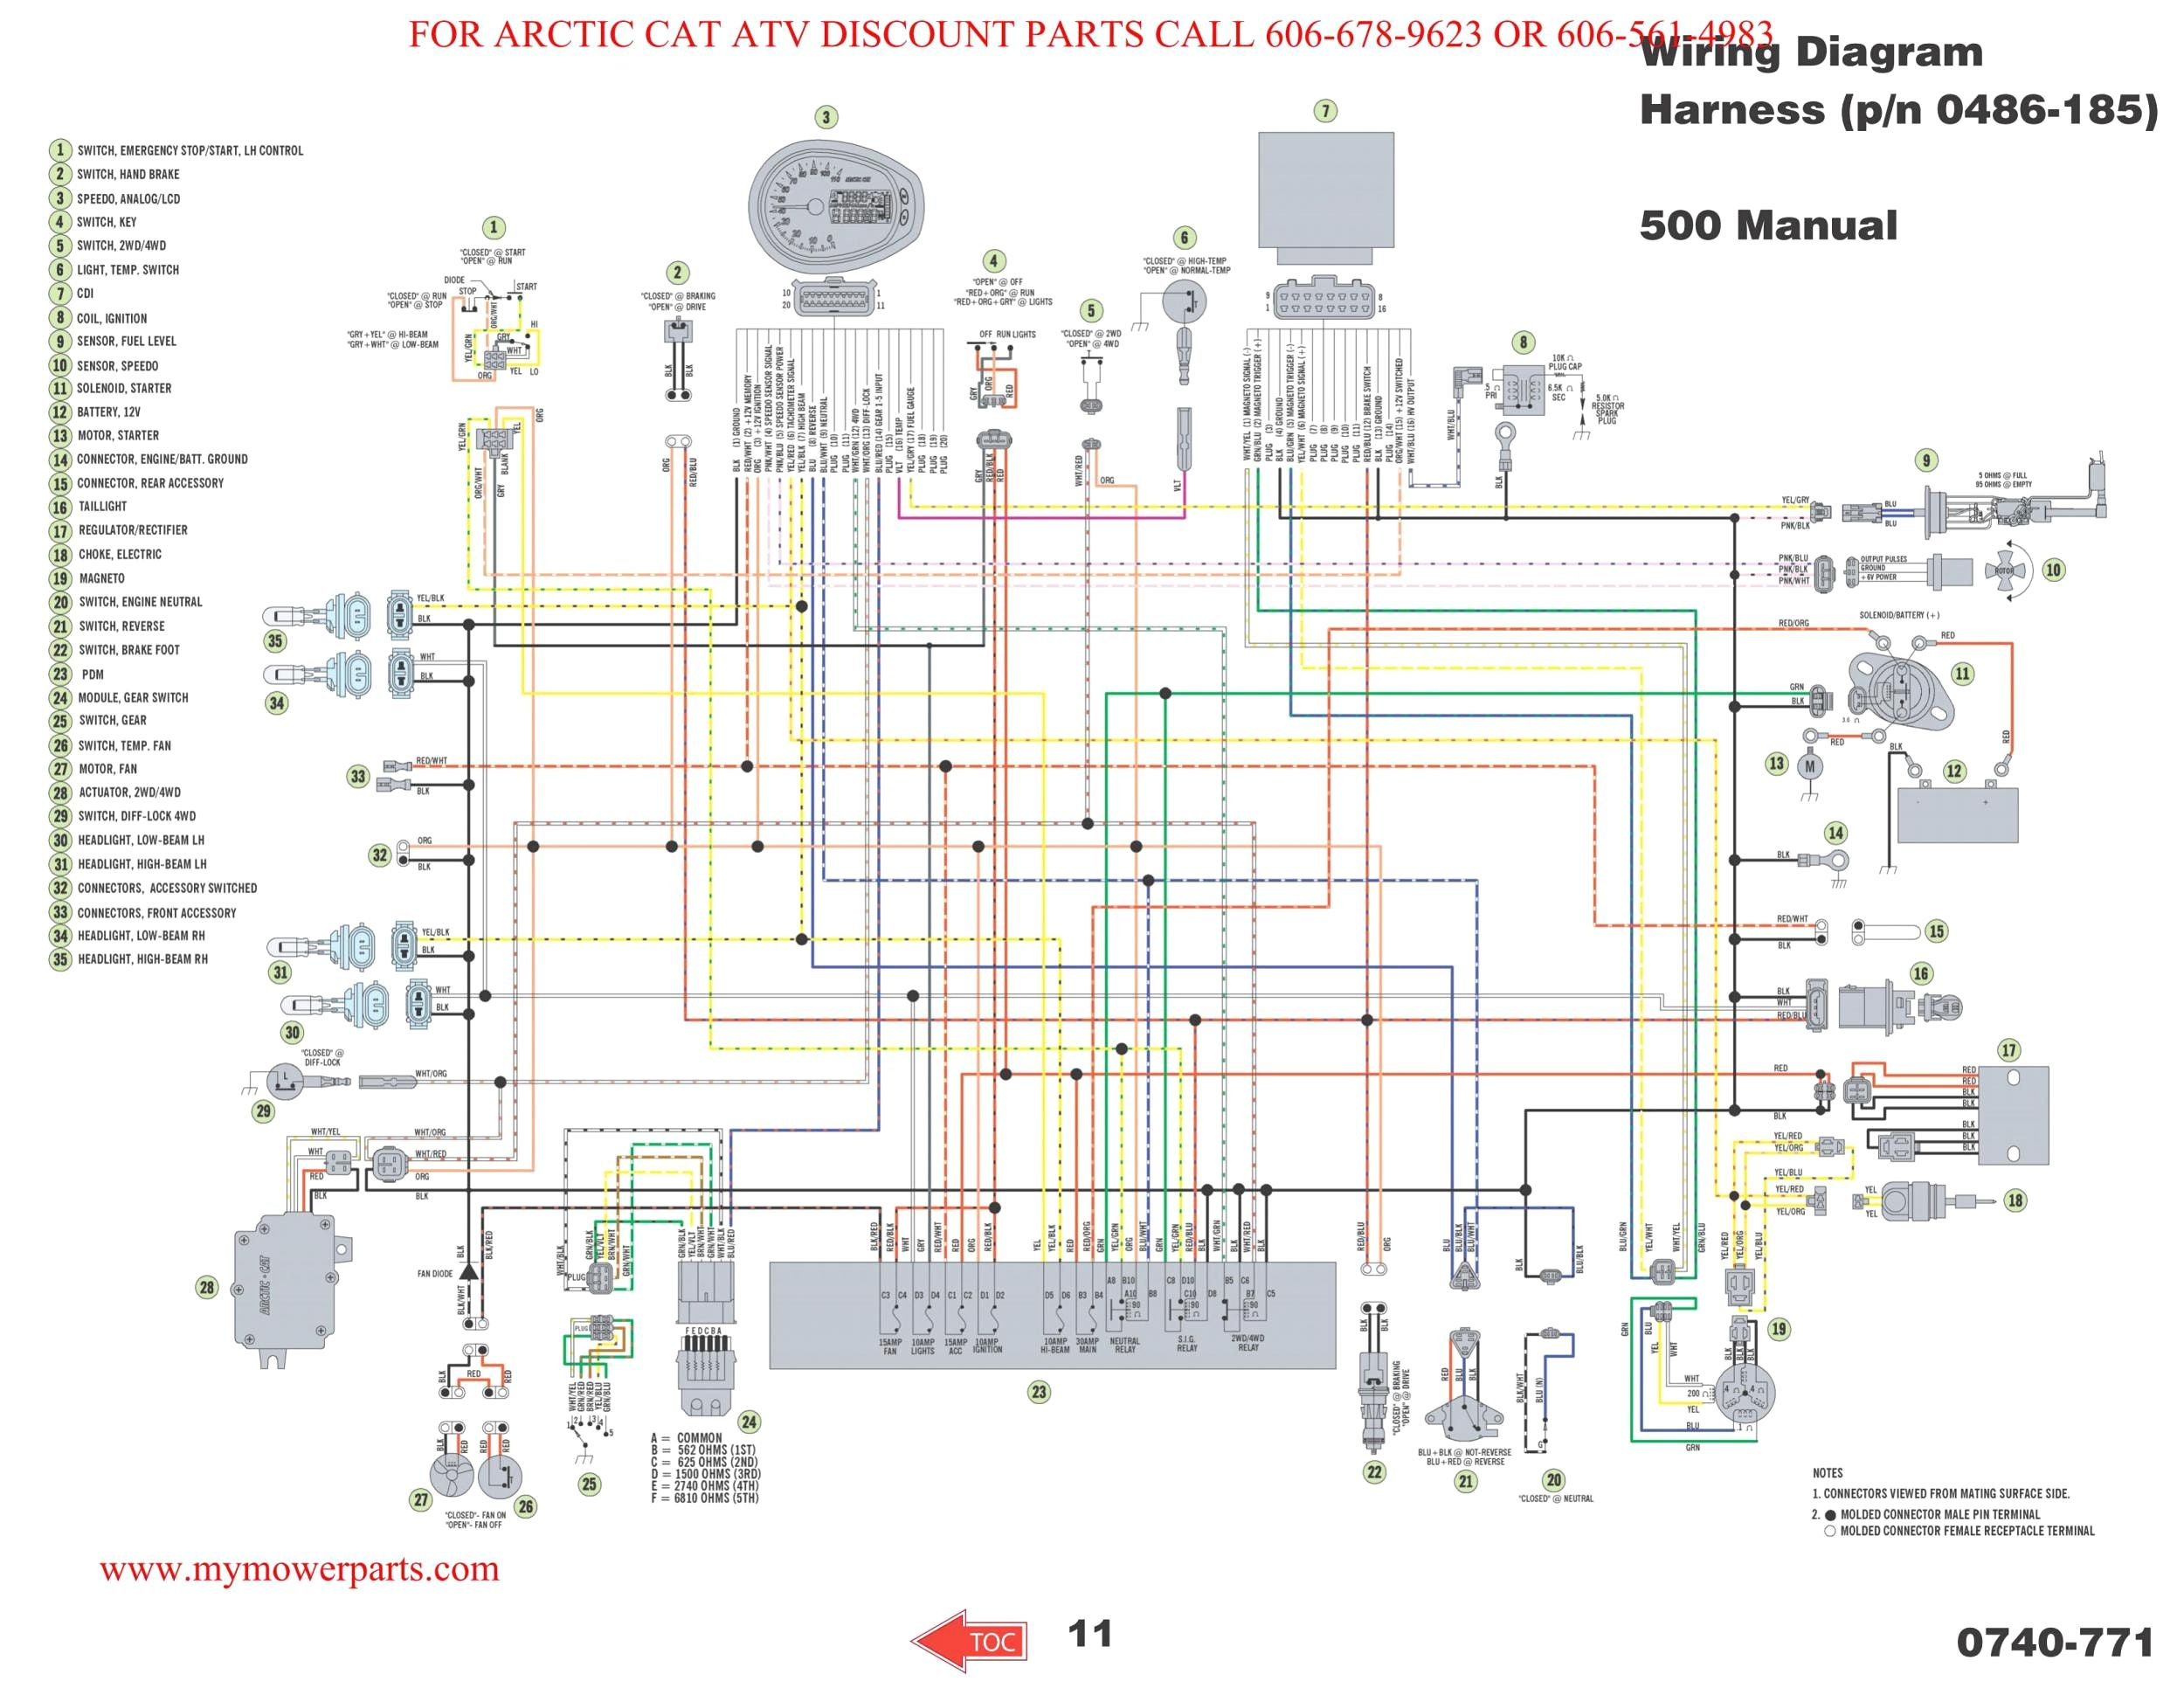 Polaris Ranger 500 Wiring Diagram Polaris Ranger Diagram Diagram Chart